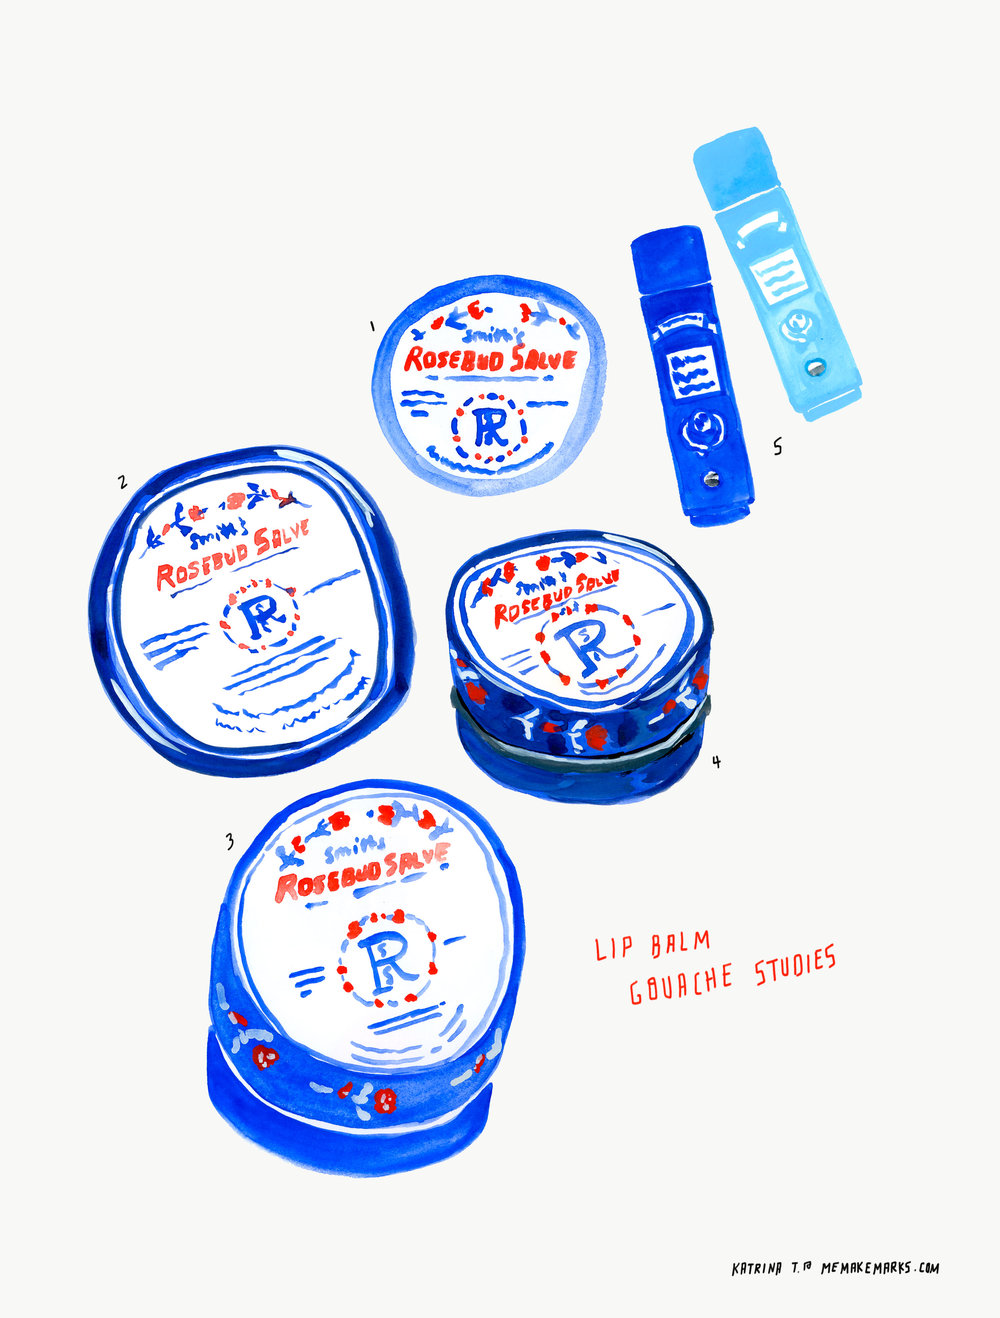 lip balm gouache studies